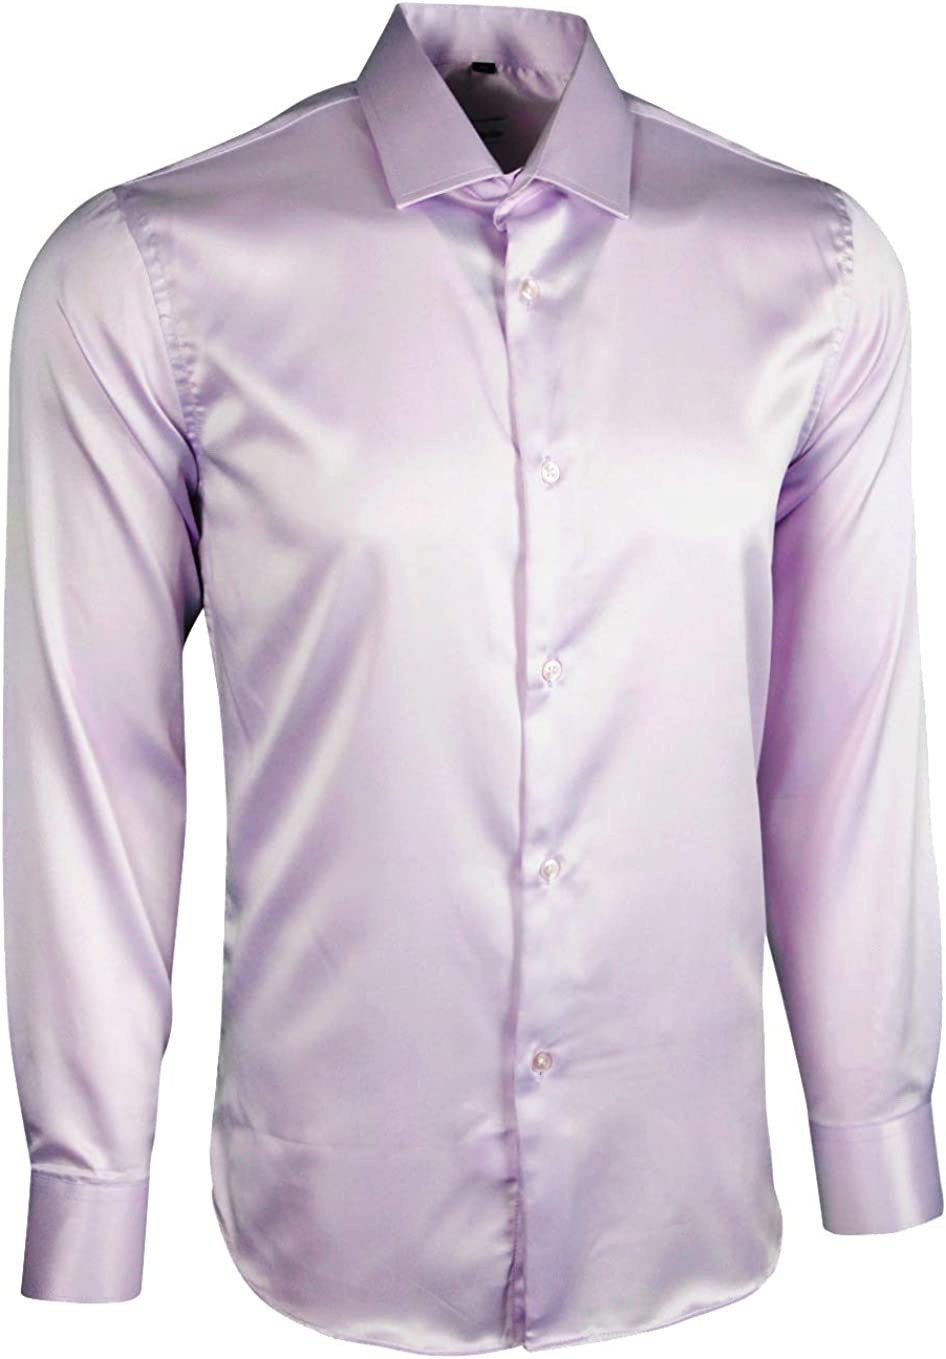 Dominic Stefano Mens Satin Shiny Silk Feel Smart Casual Dress Wedding Casual Shirt 422